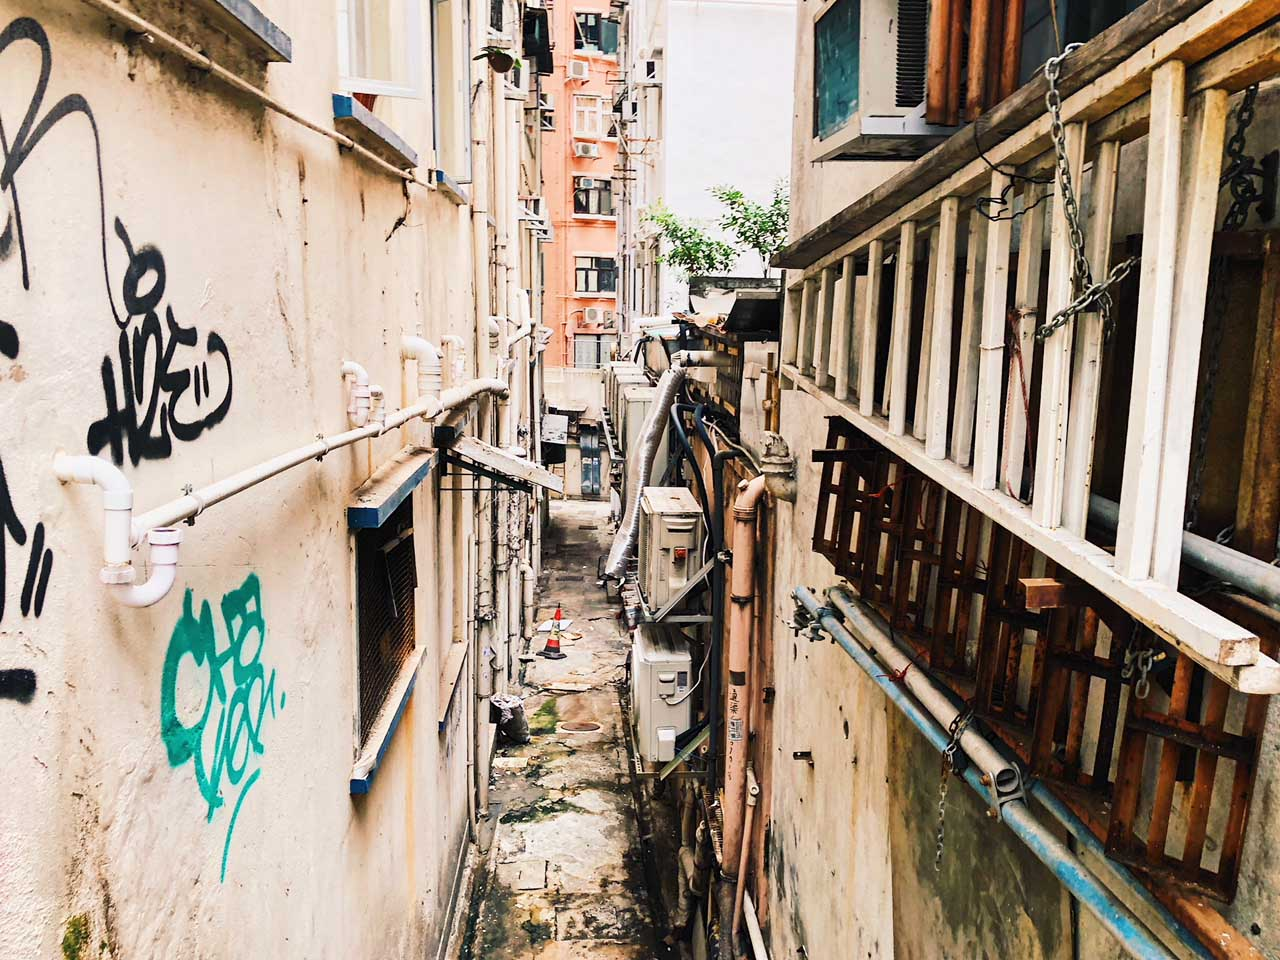 A City Made By People Hong Kong Postivie Change Observation Architecture Alley.jpg